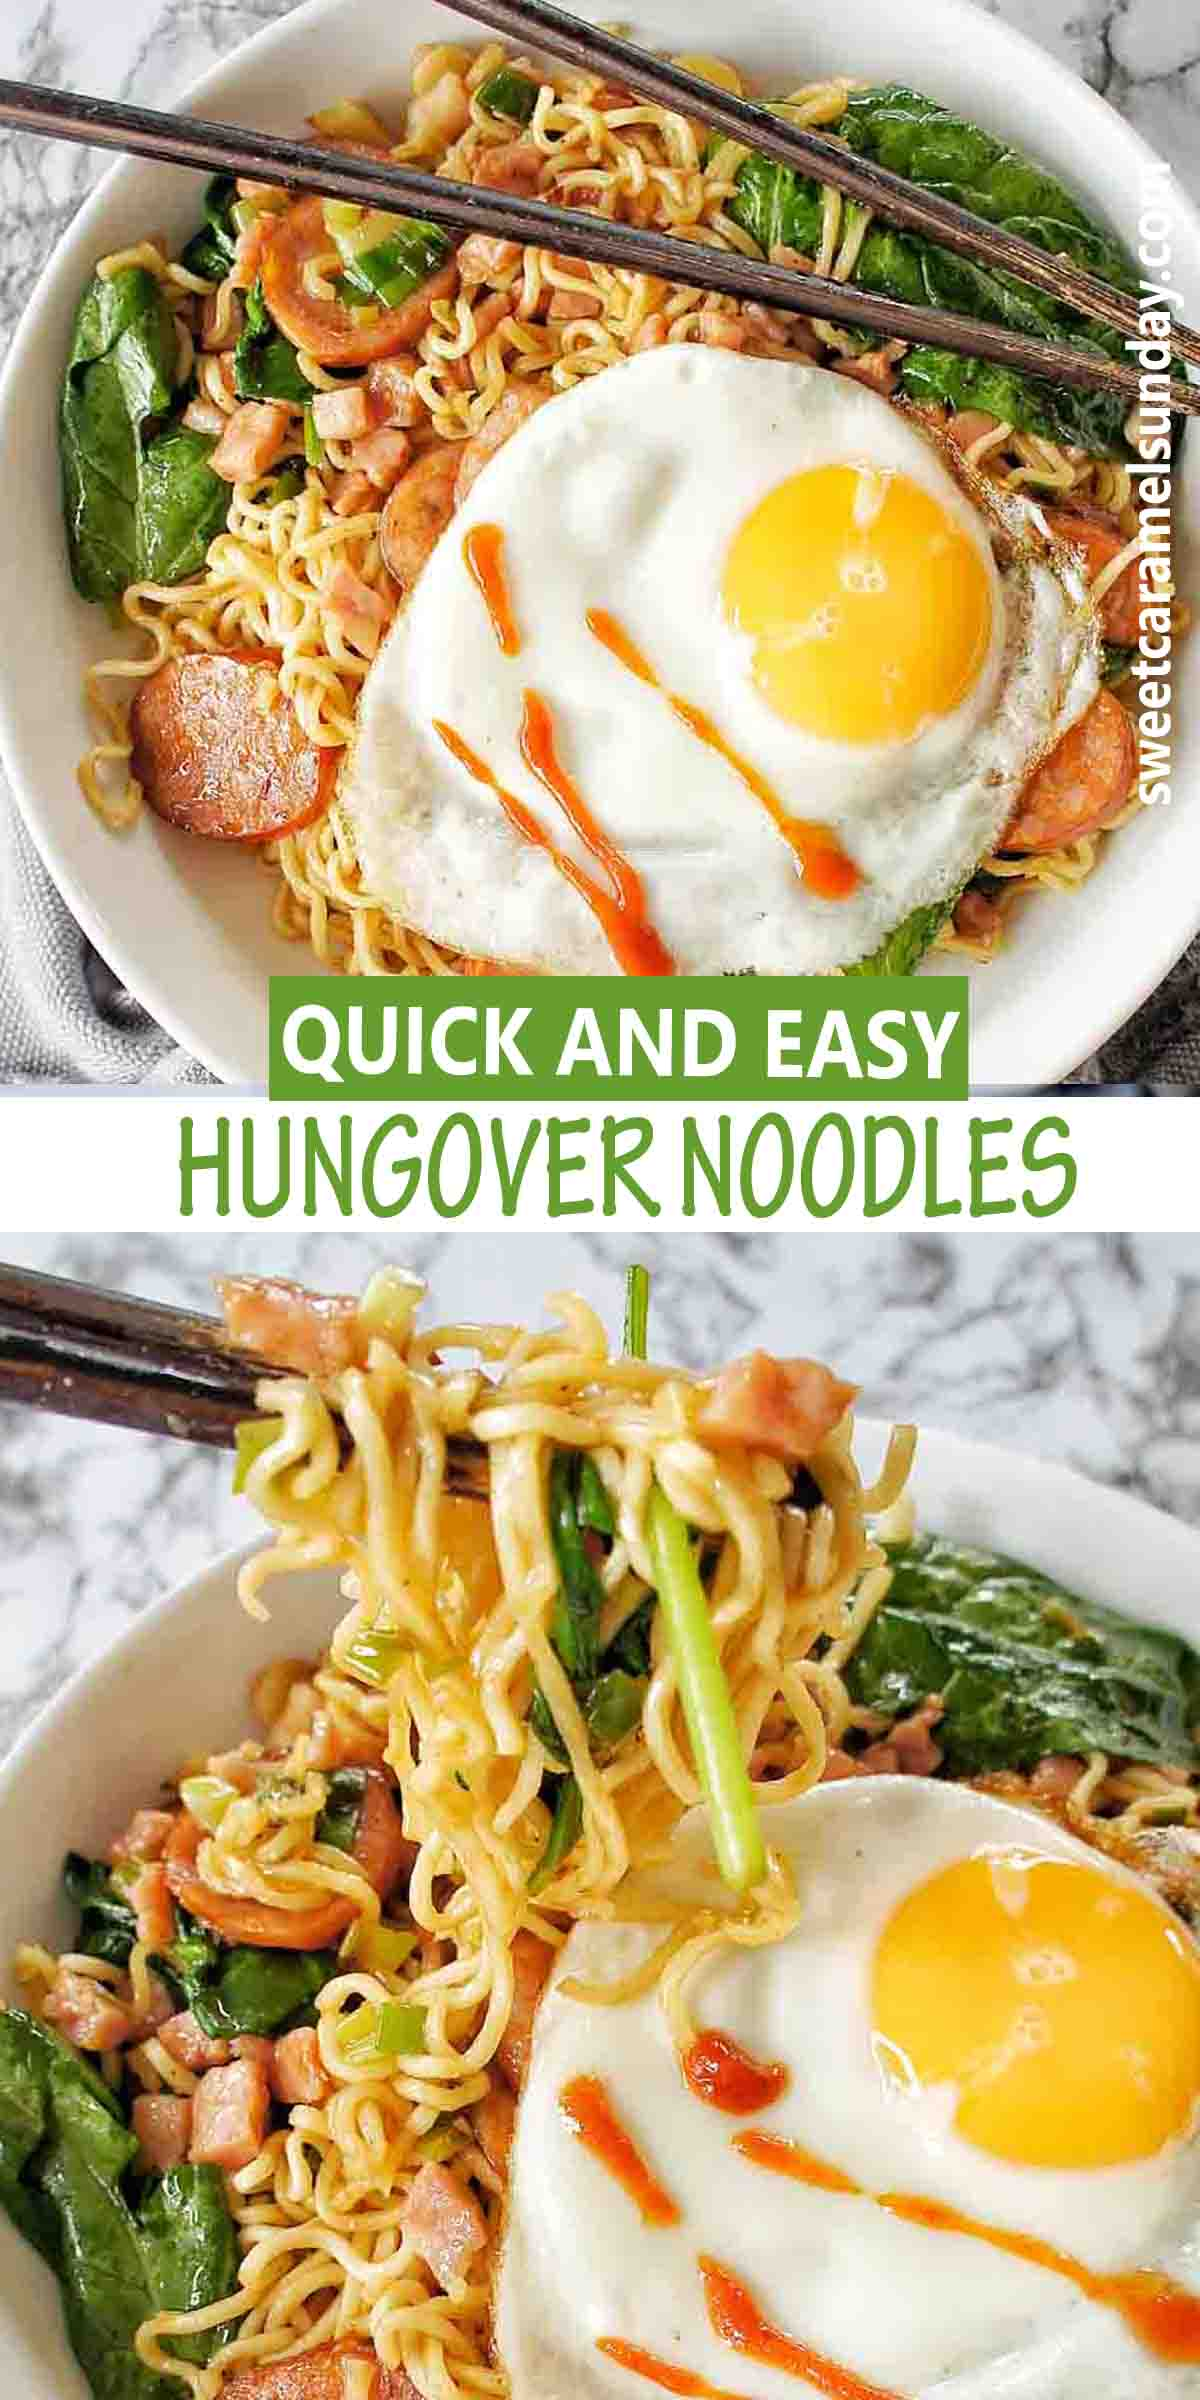 Hungover Noodles with text overlay